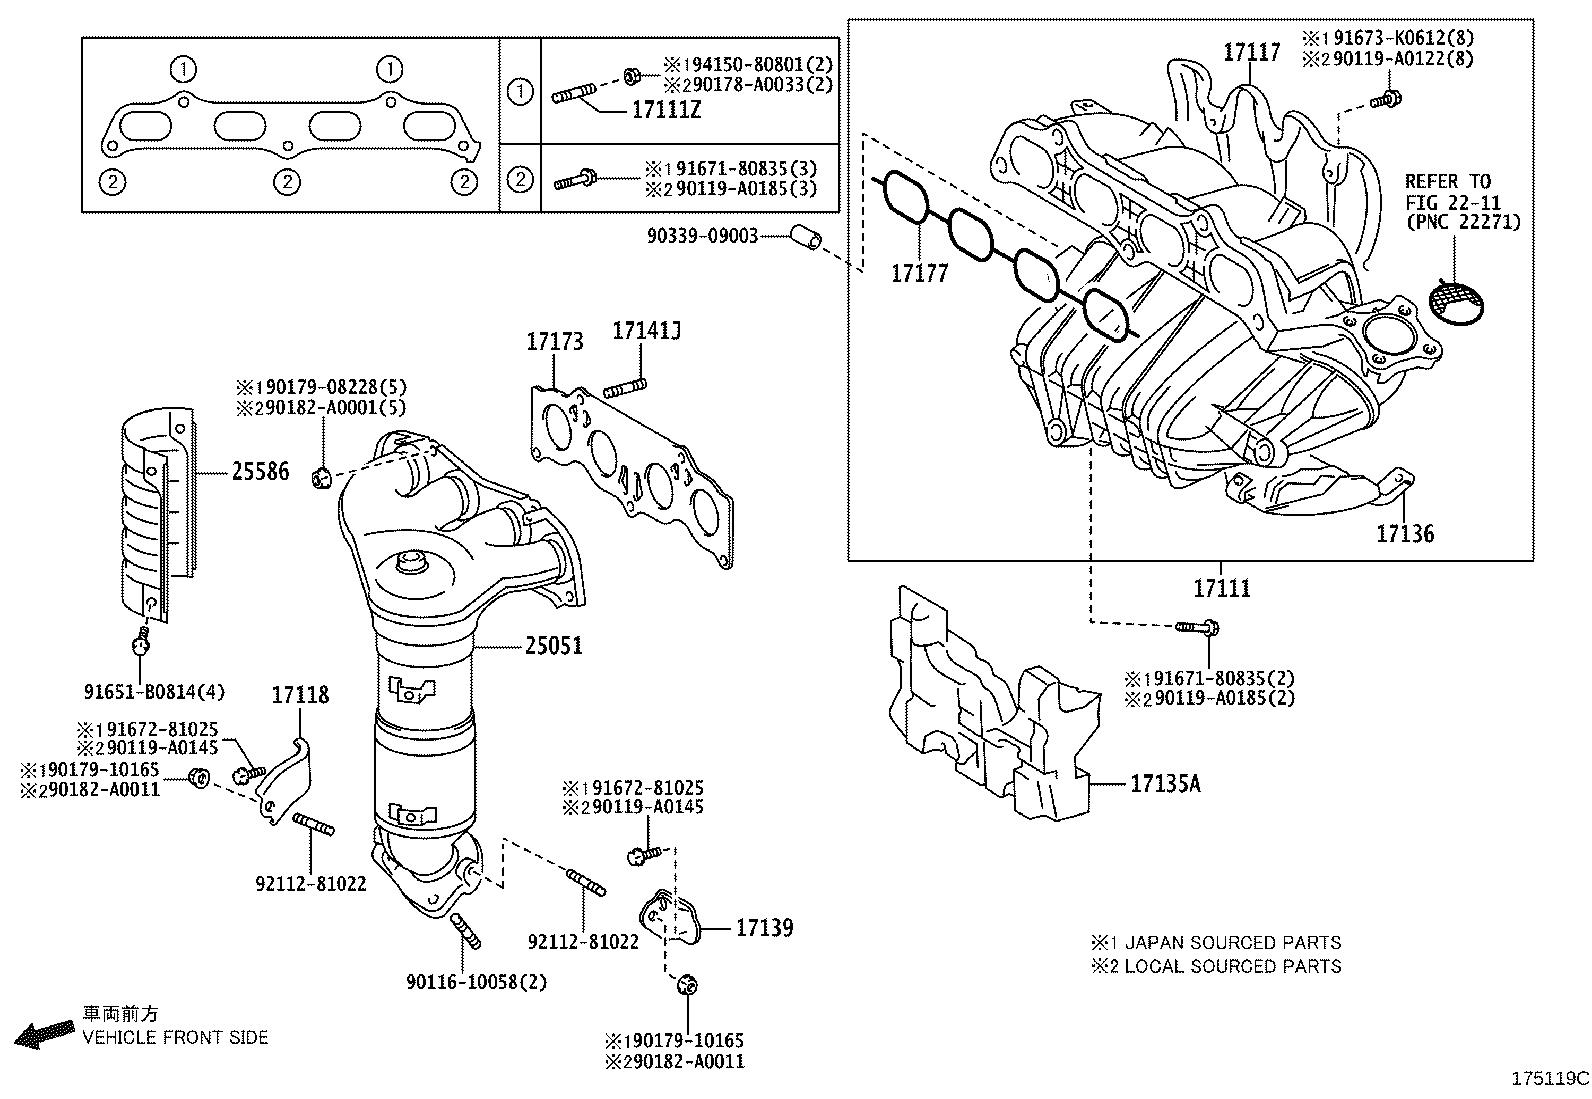 Toyota Camry Converter sub-assembly, exhaust manifold